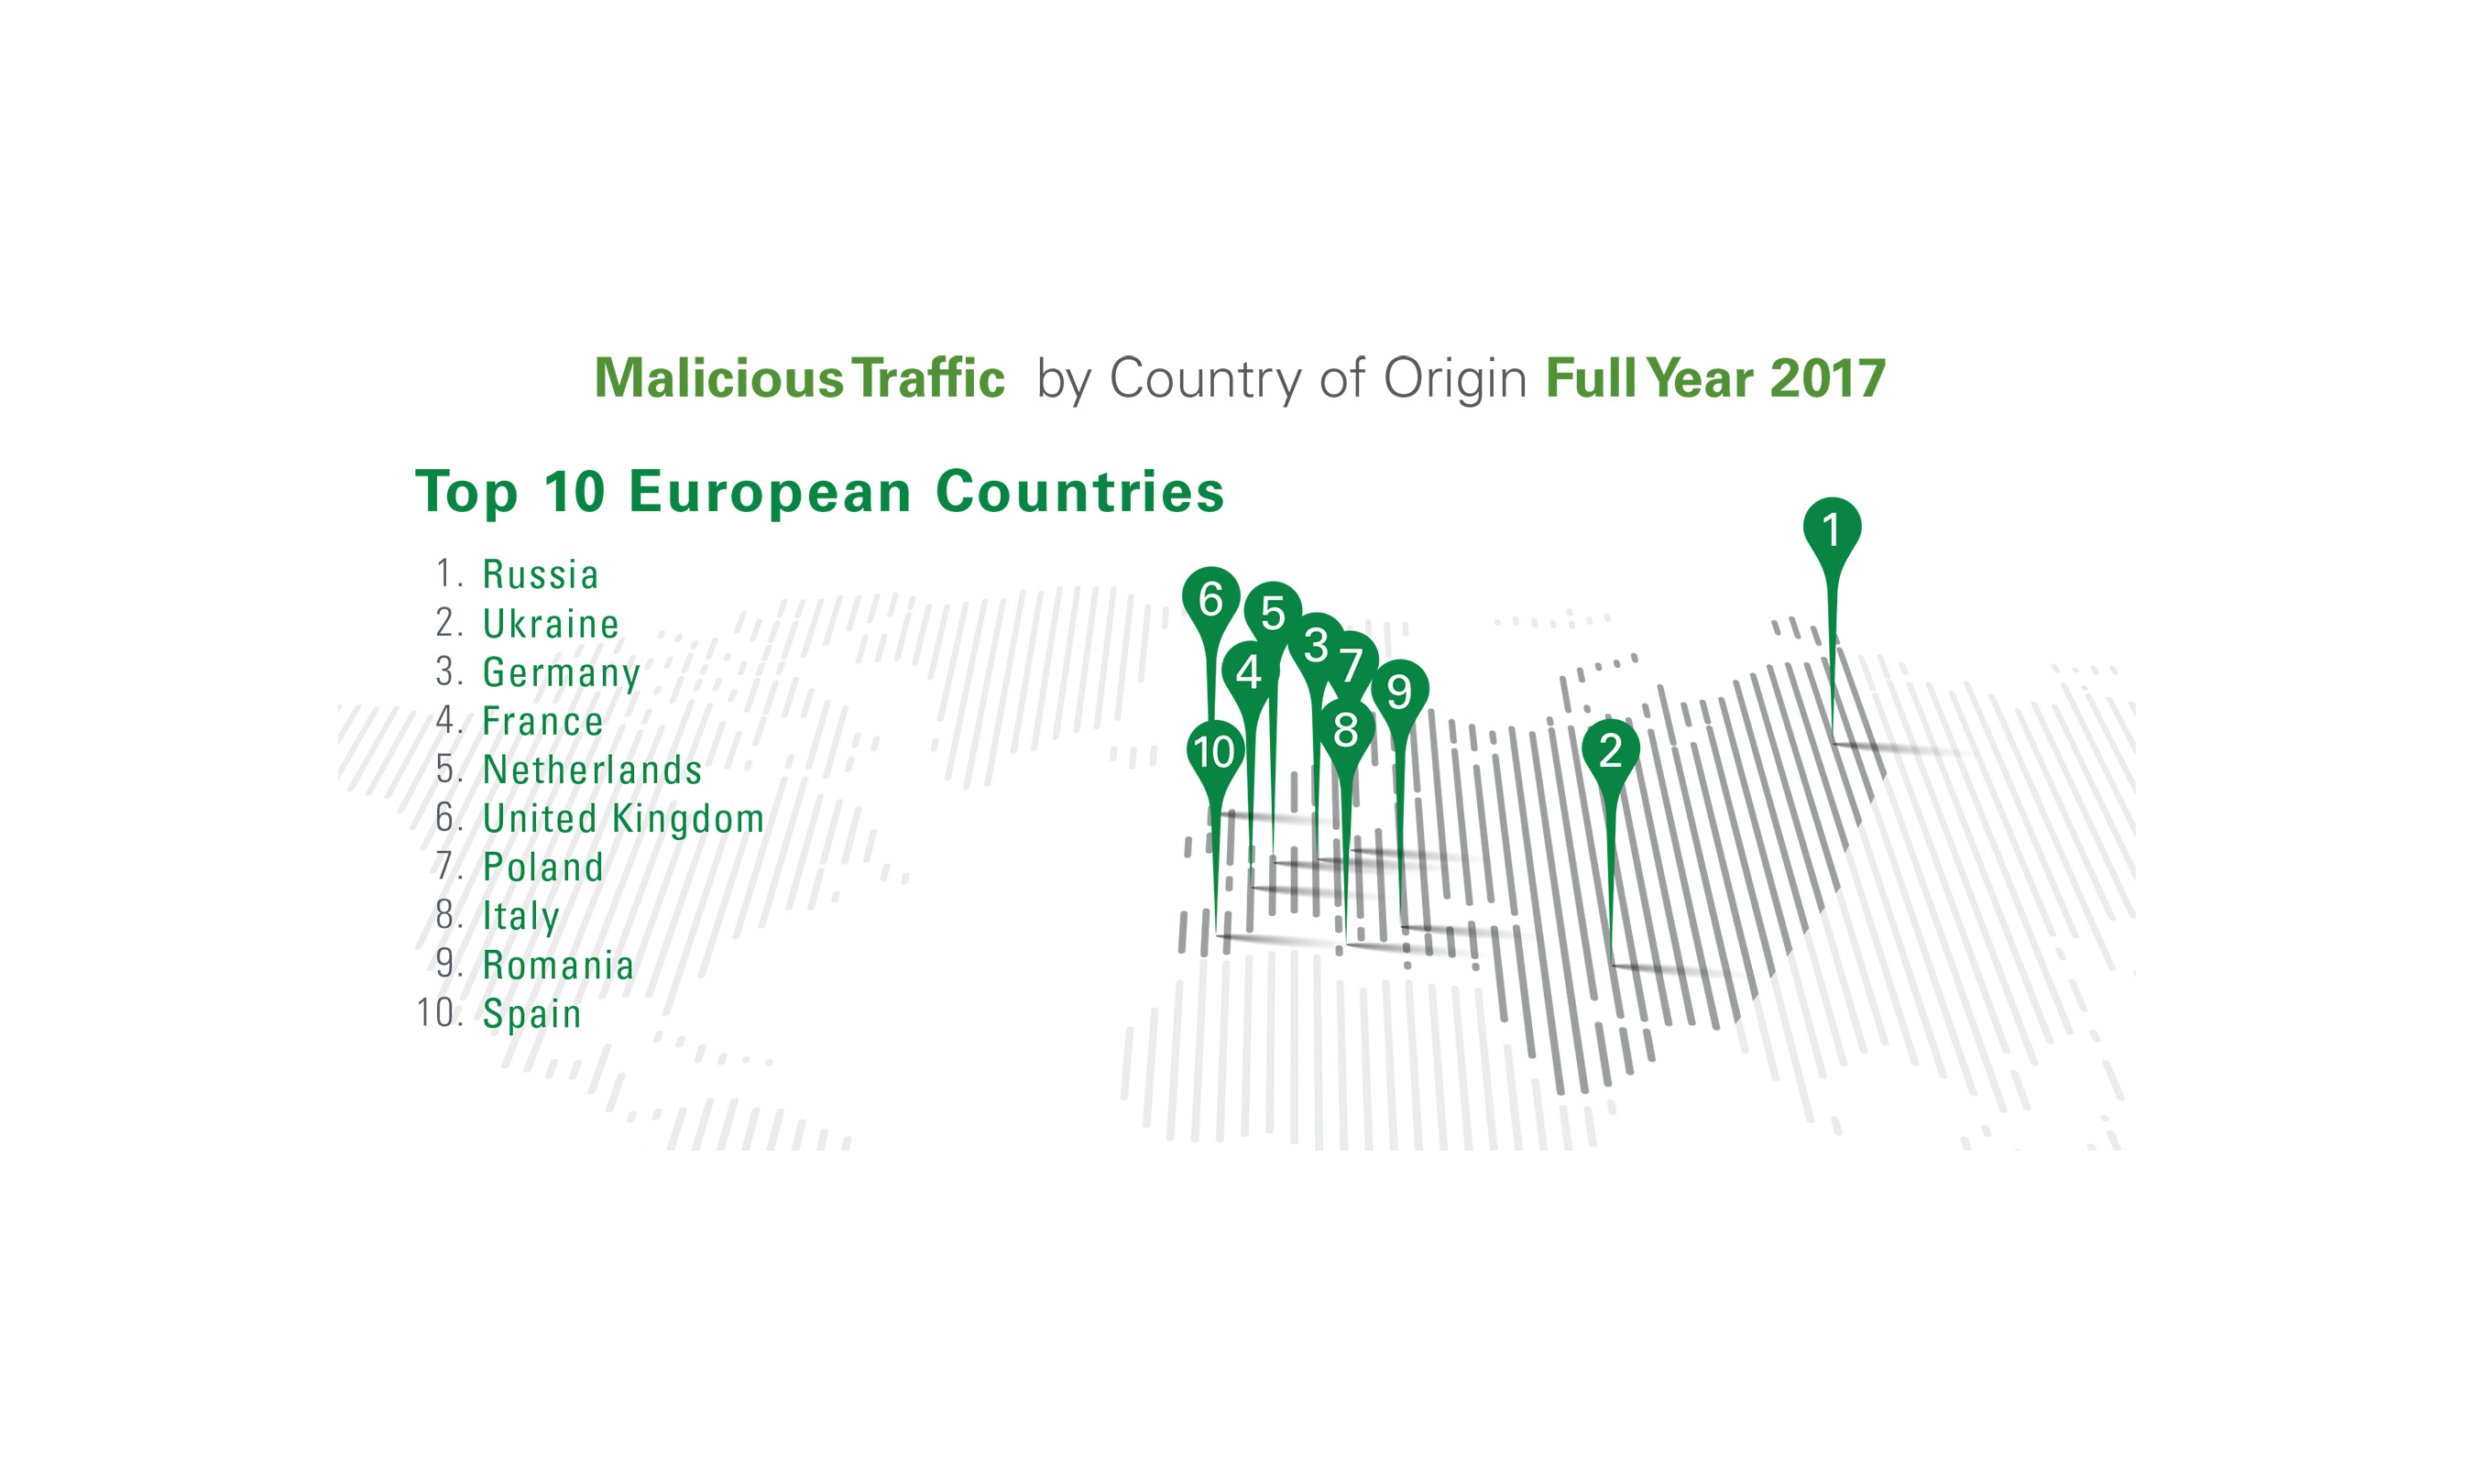 The top ten countries generating malicious internet traffic in Europe.